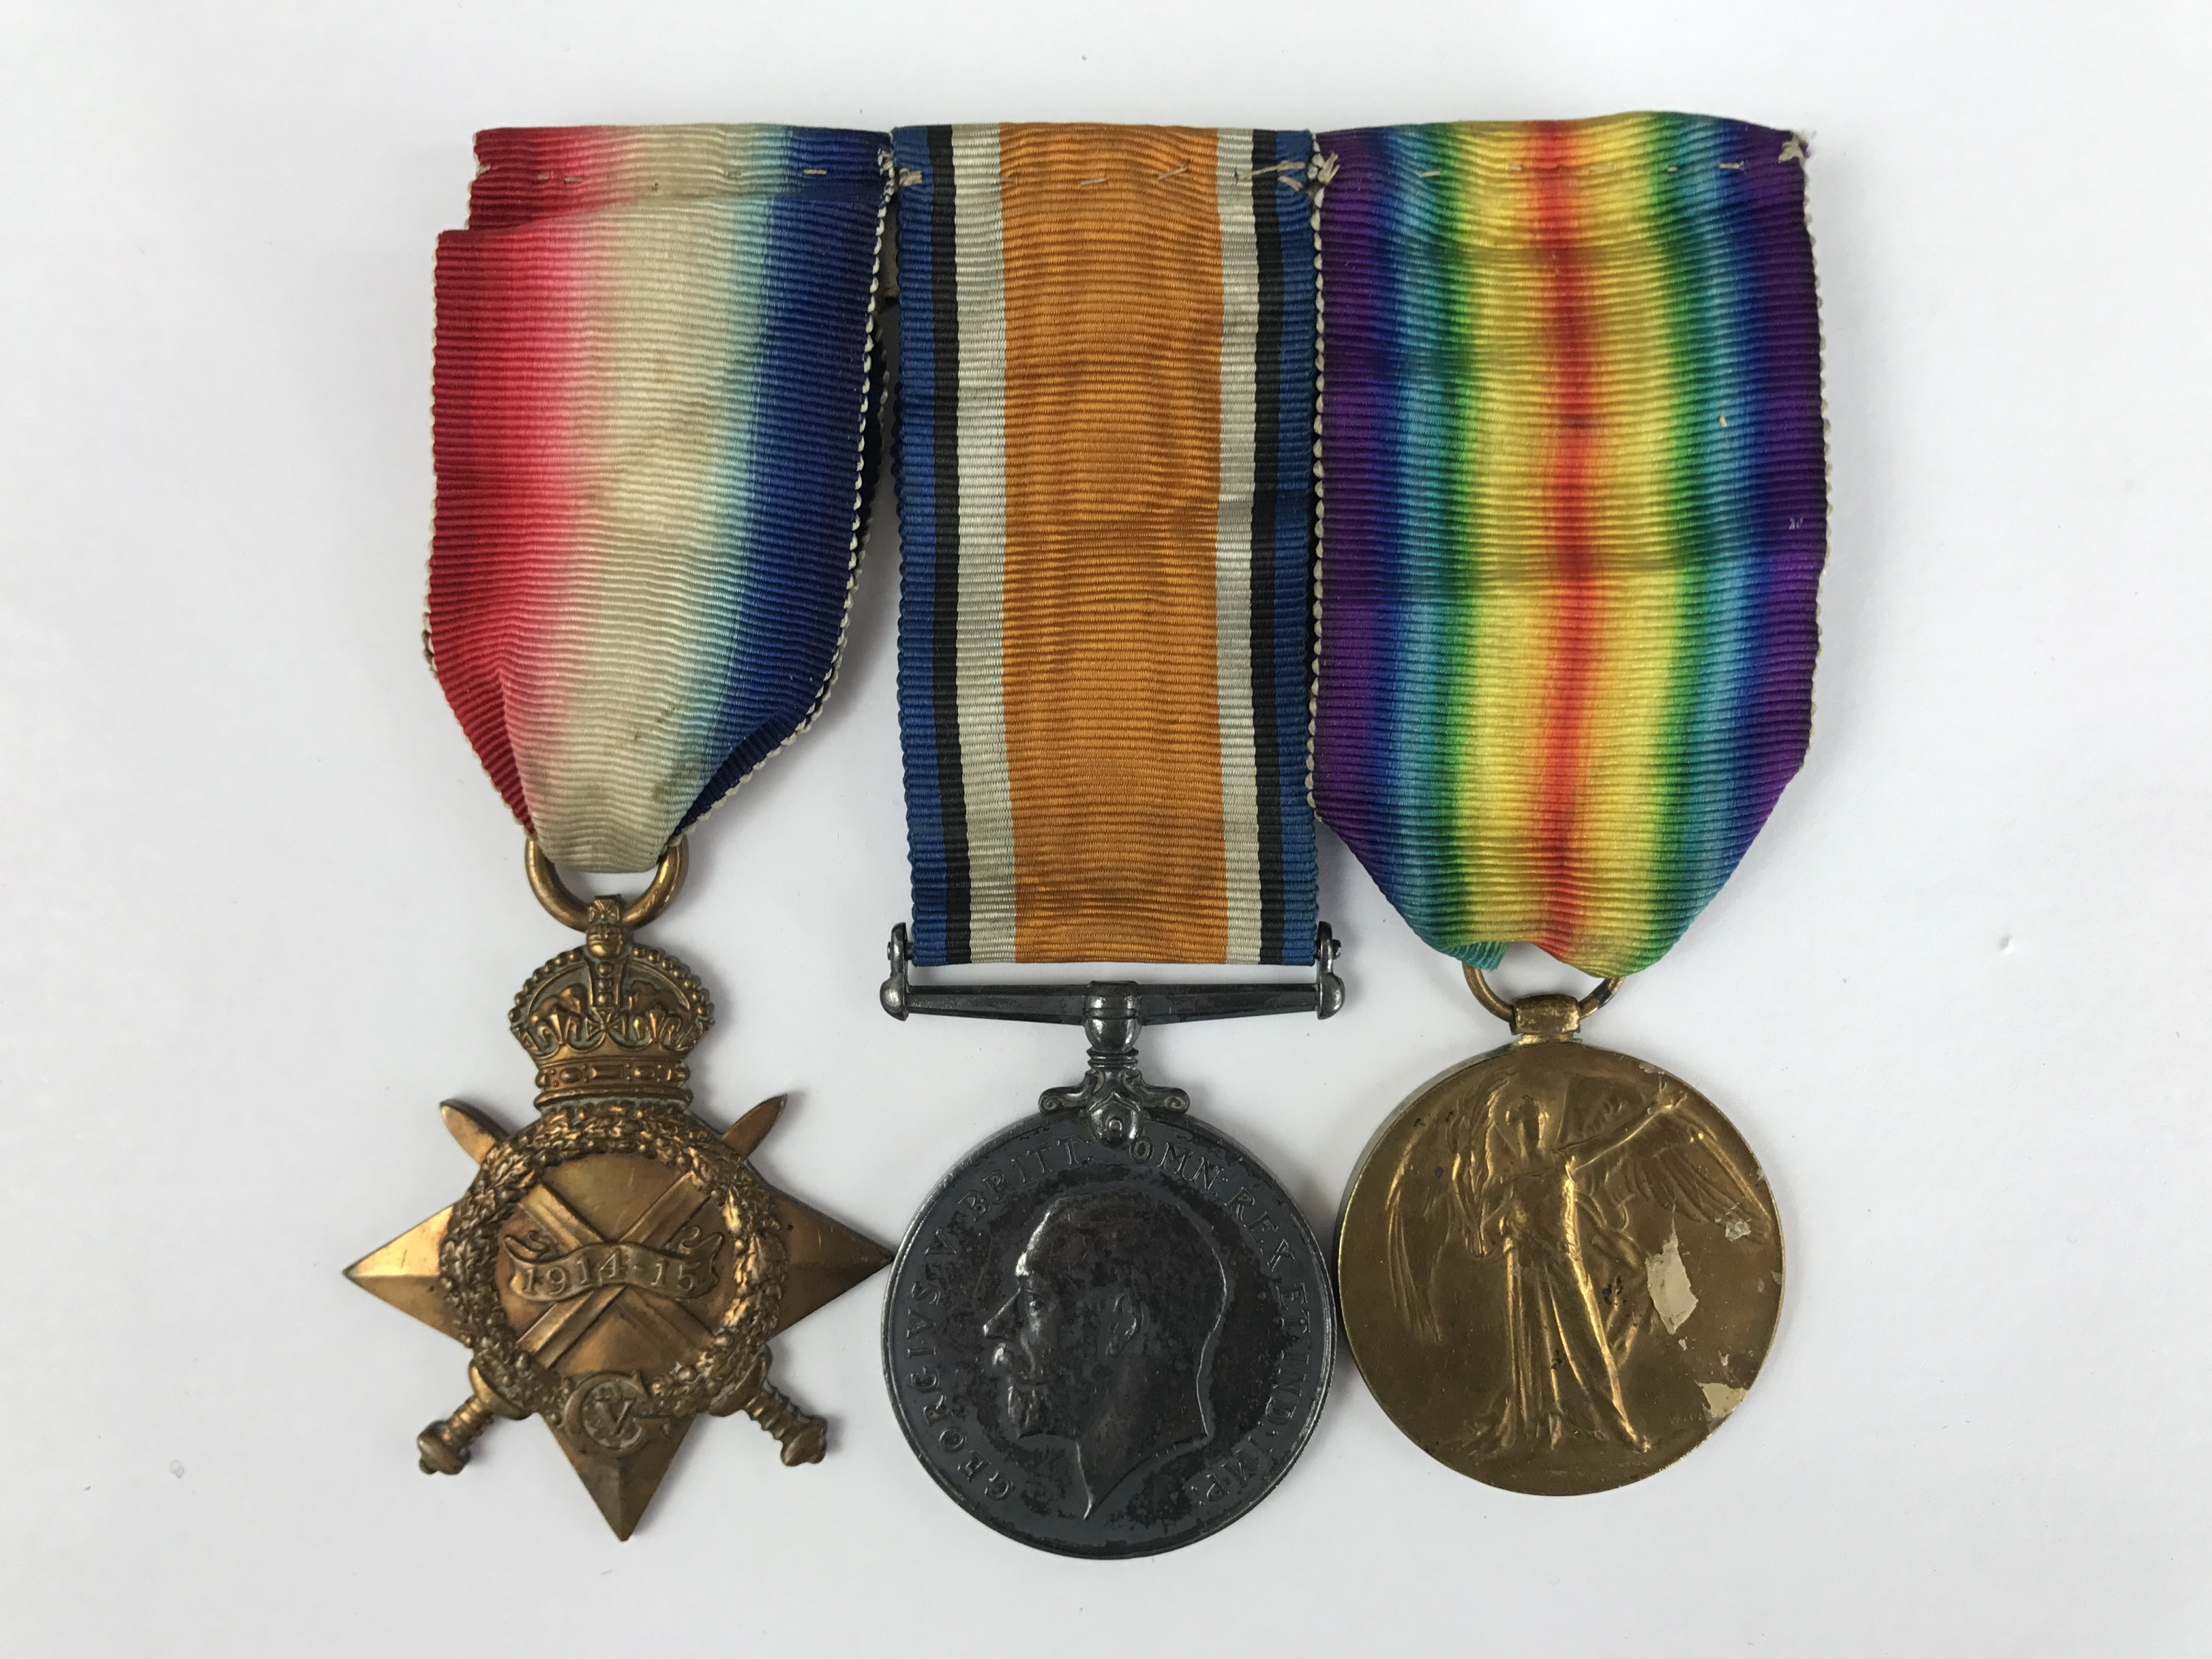 Lot 3 - A 1914-15 Star, British War and Victory medals to 2126 Pte W J Reeves, Border Regiment